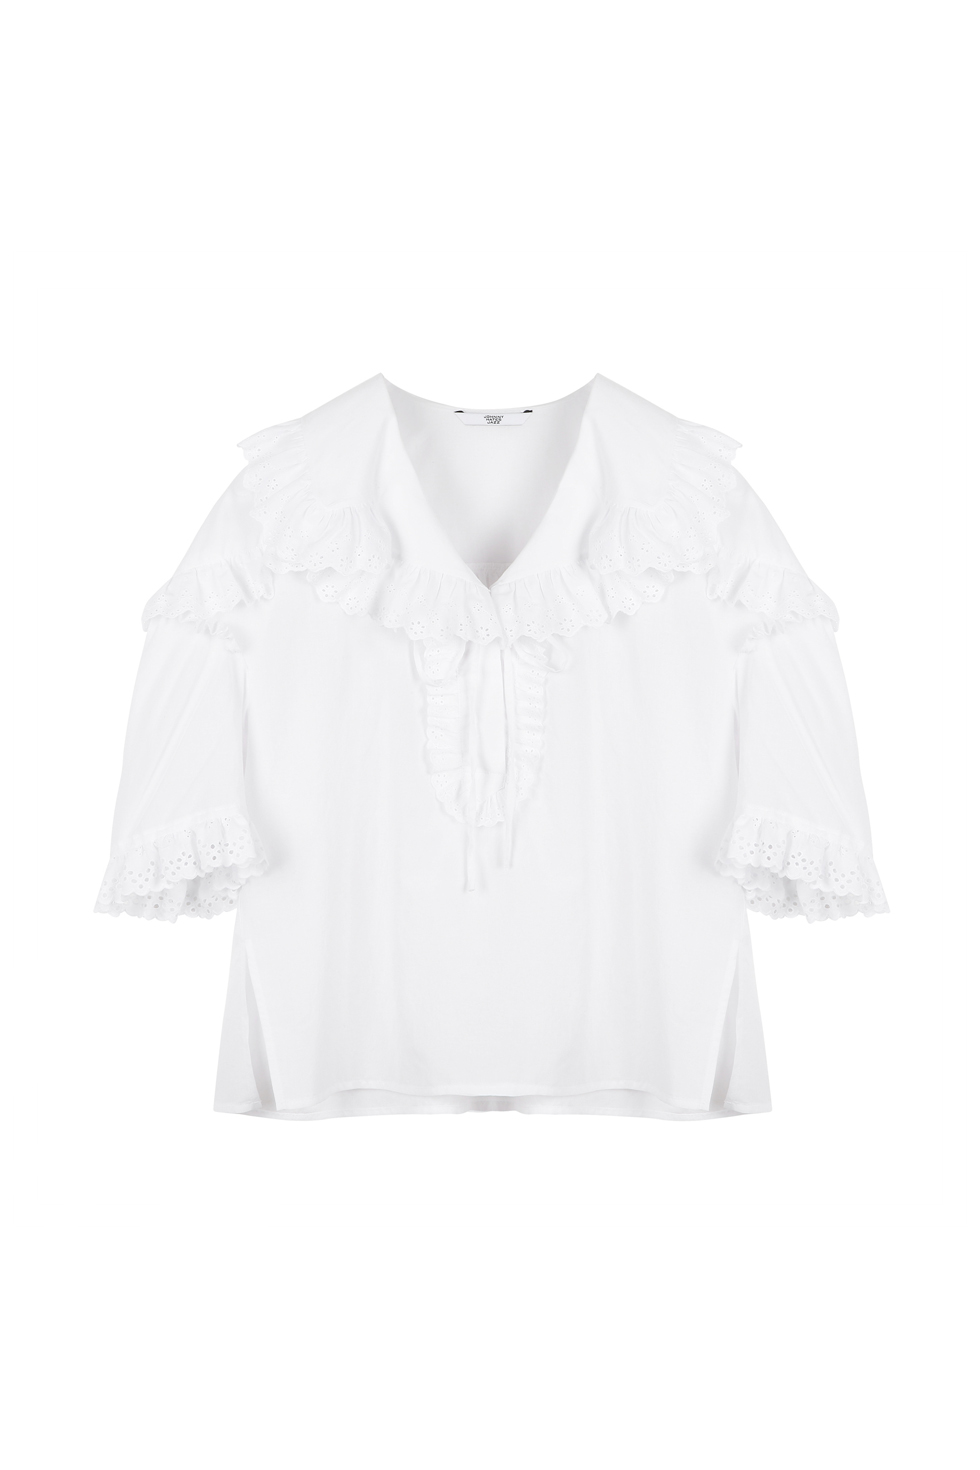 BROIDERY RUFFLE BLOUSE - WHITE